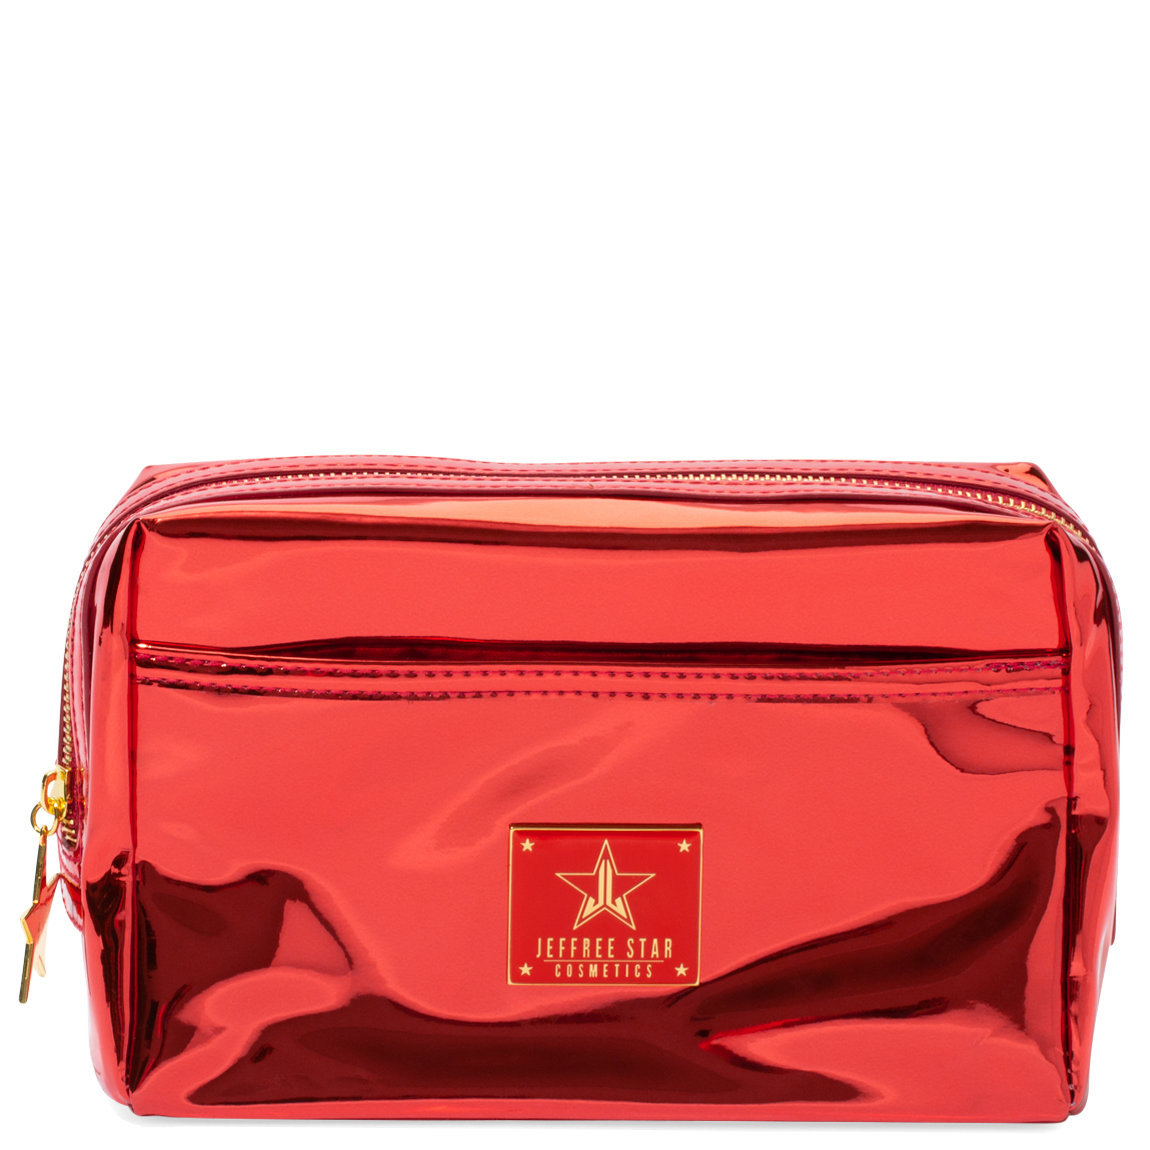 Jeffree Star Cosmetics Makeup Bag Reflective Red product swatch.